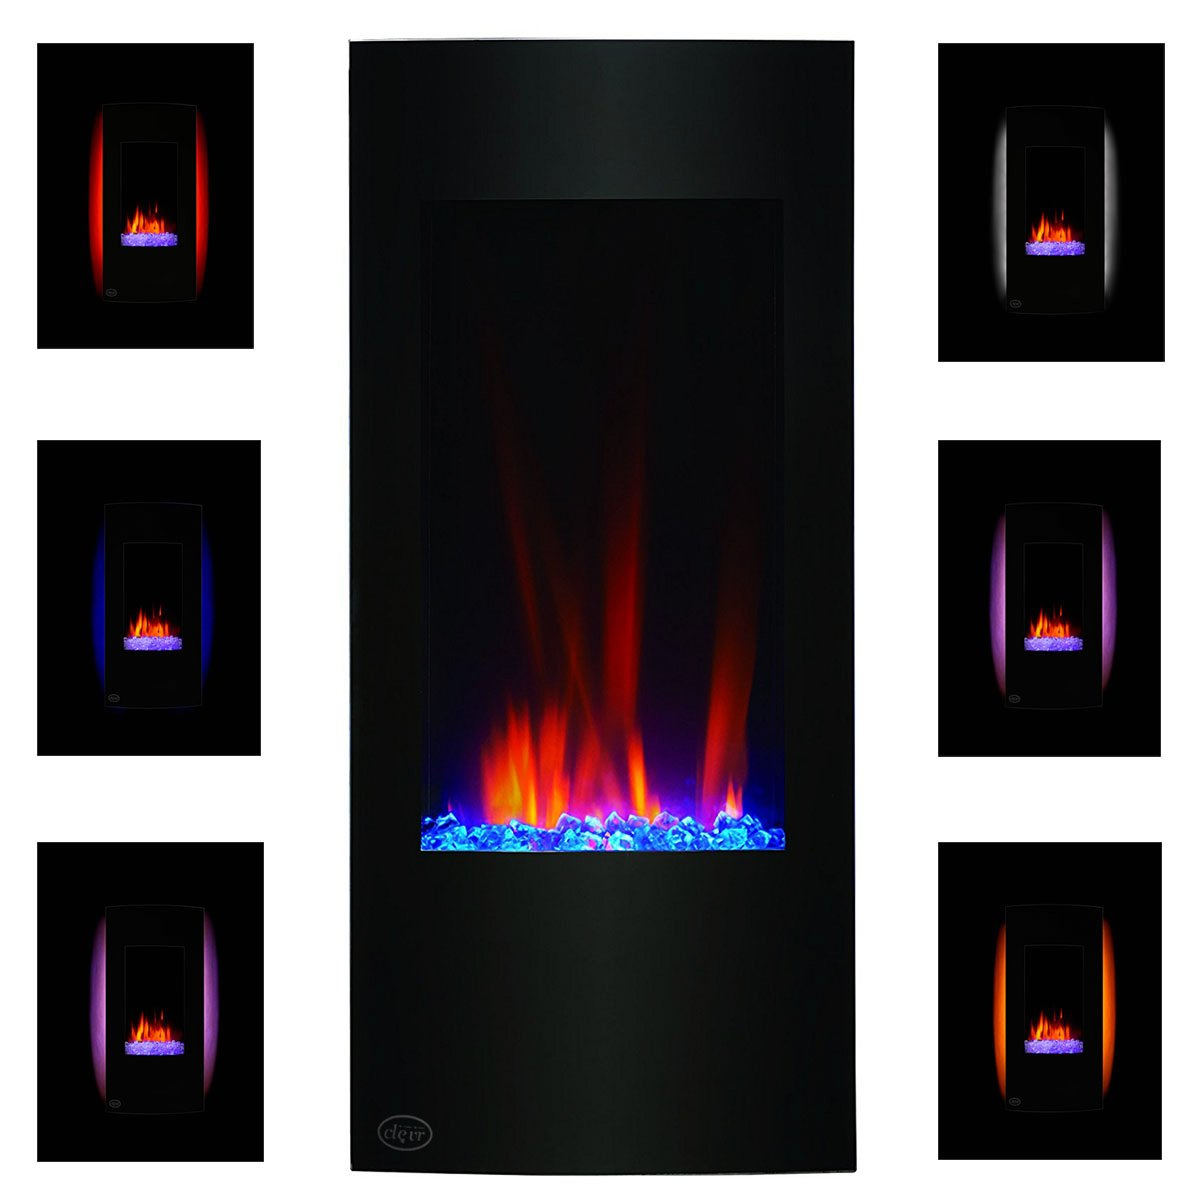 Clevr 750-1500W 32'' Vertical Electric Wall Mount Fireplace Heater, Adjustable Back Light Color, Decorative Crystals, CSA and UL Certified